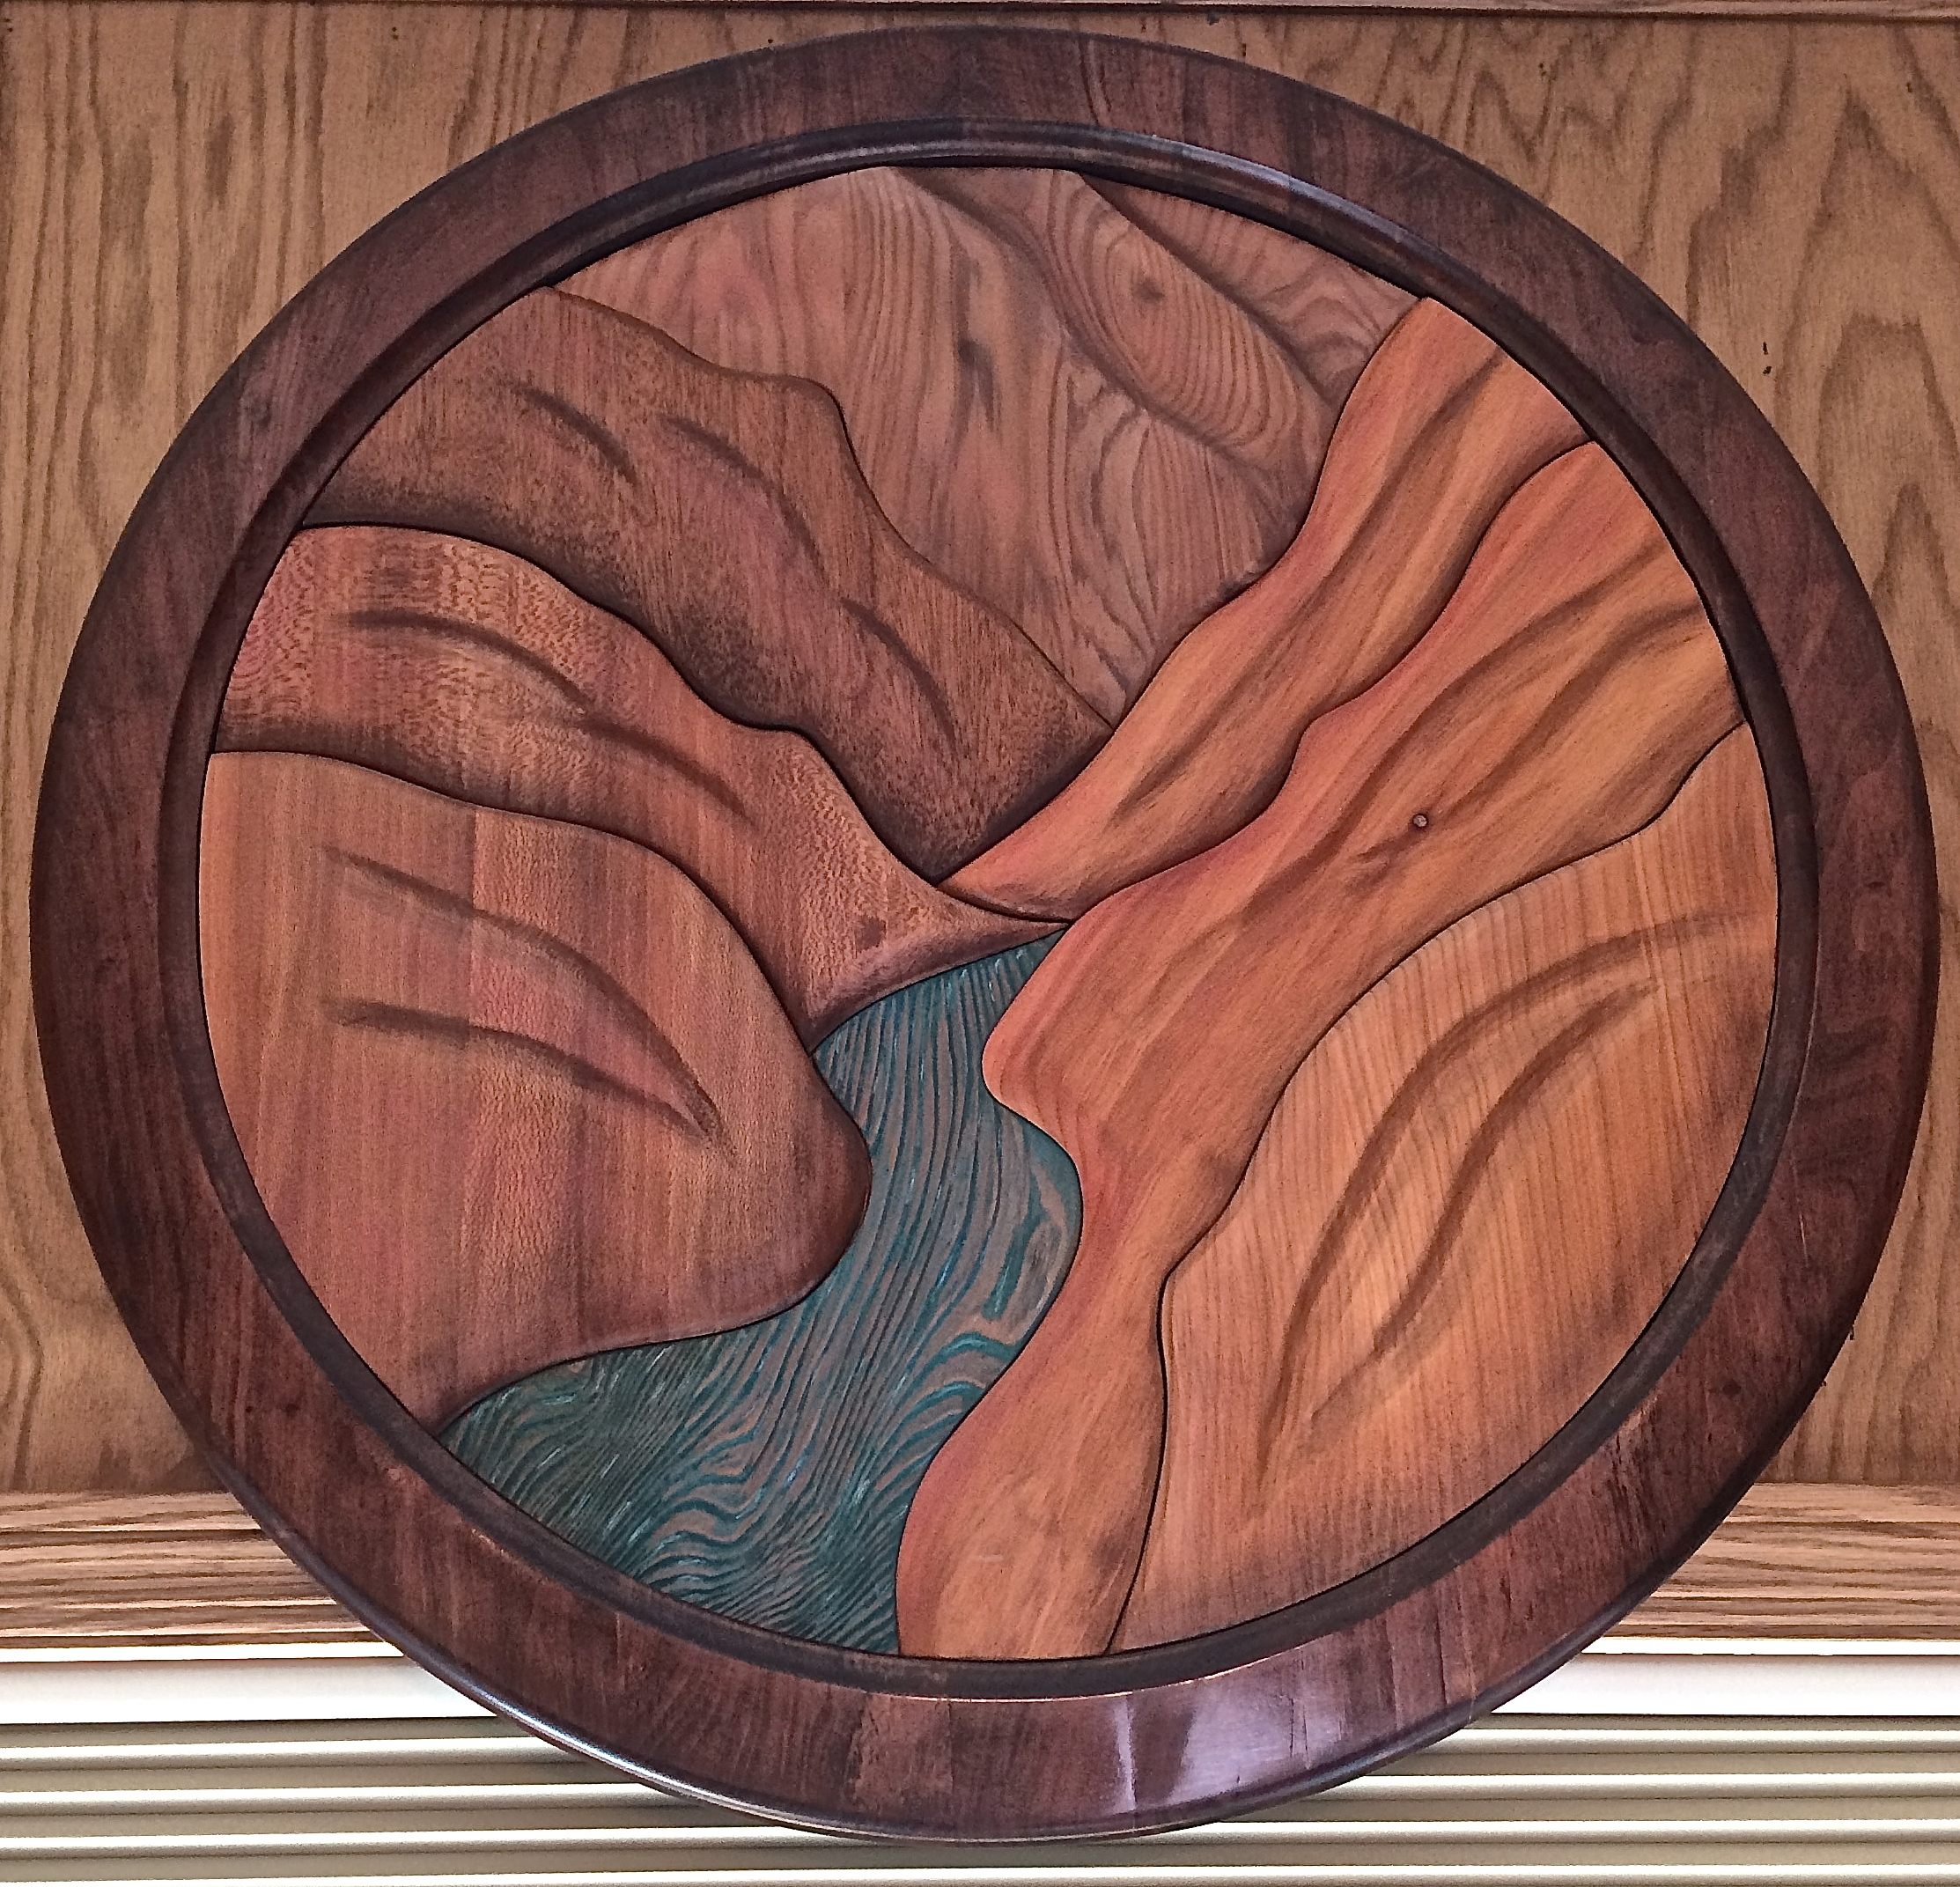 Ellensburg canyon winery kittitas county chamber of commerce Wood valley designs